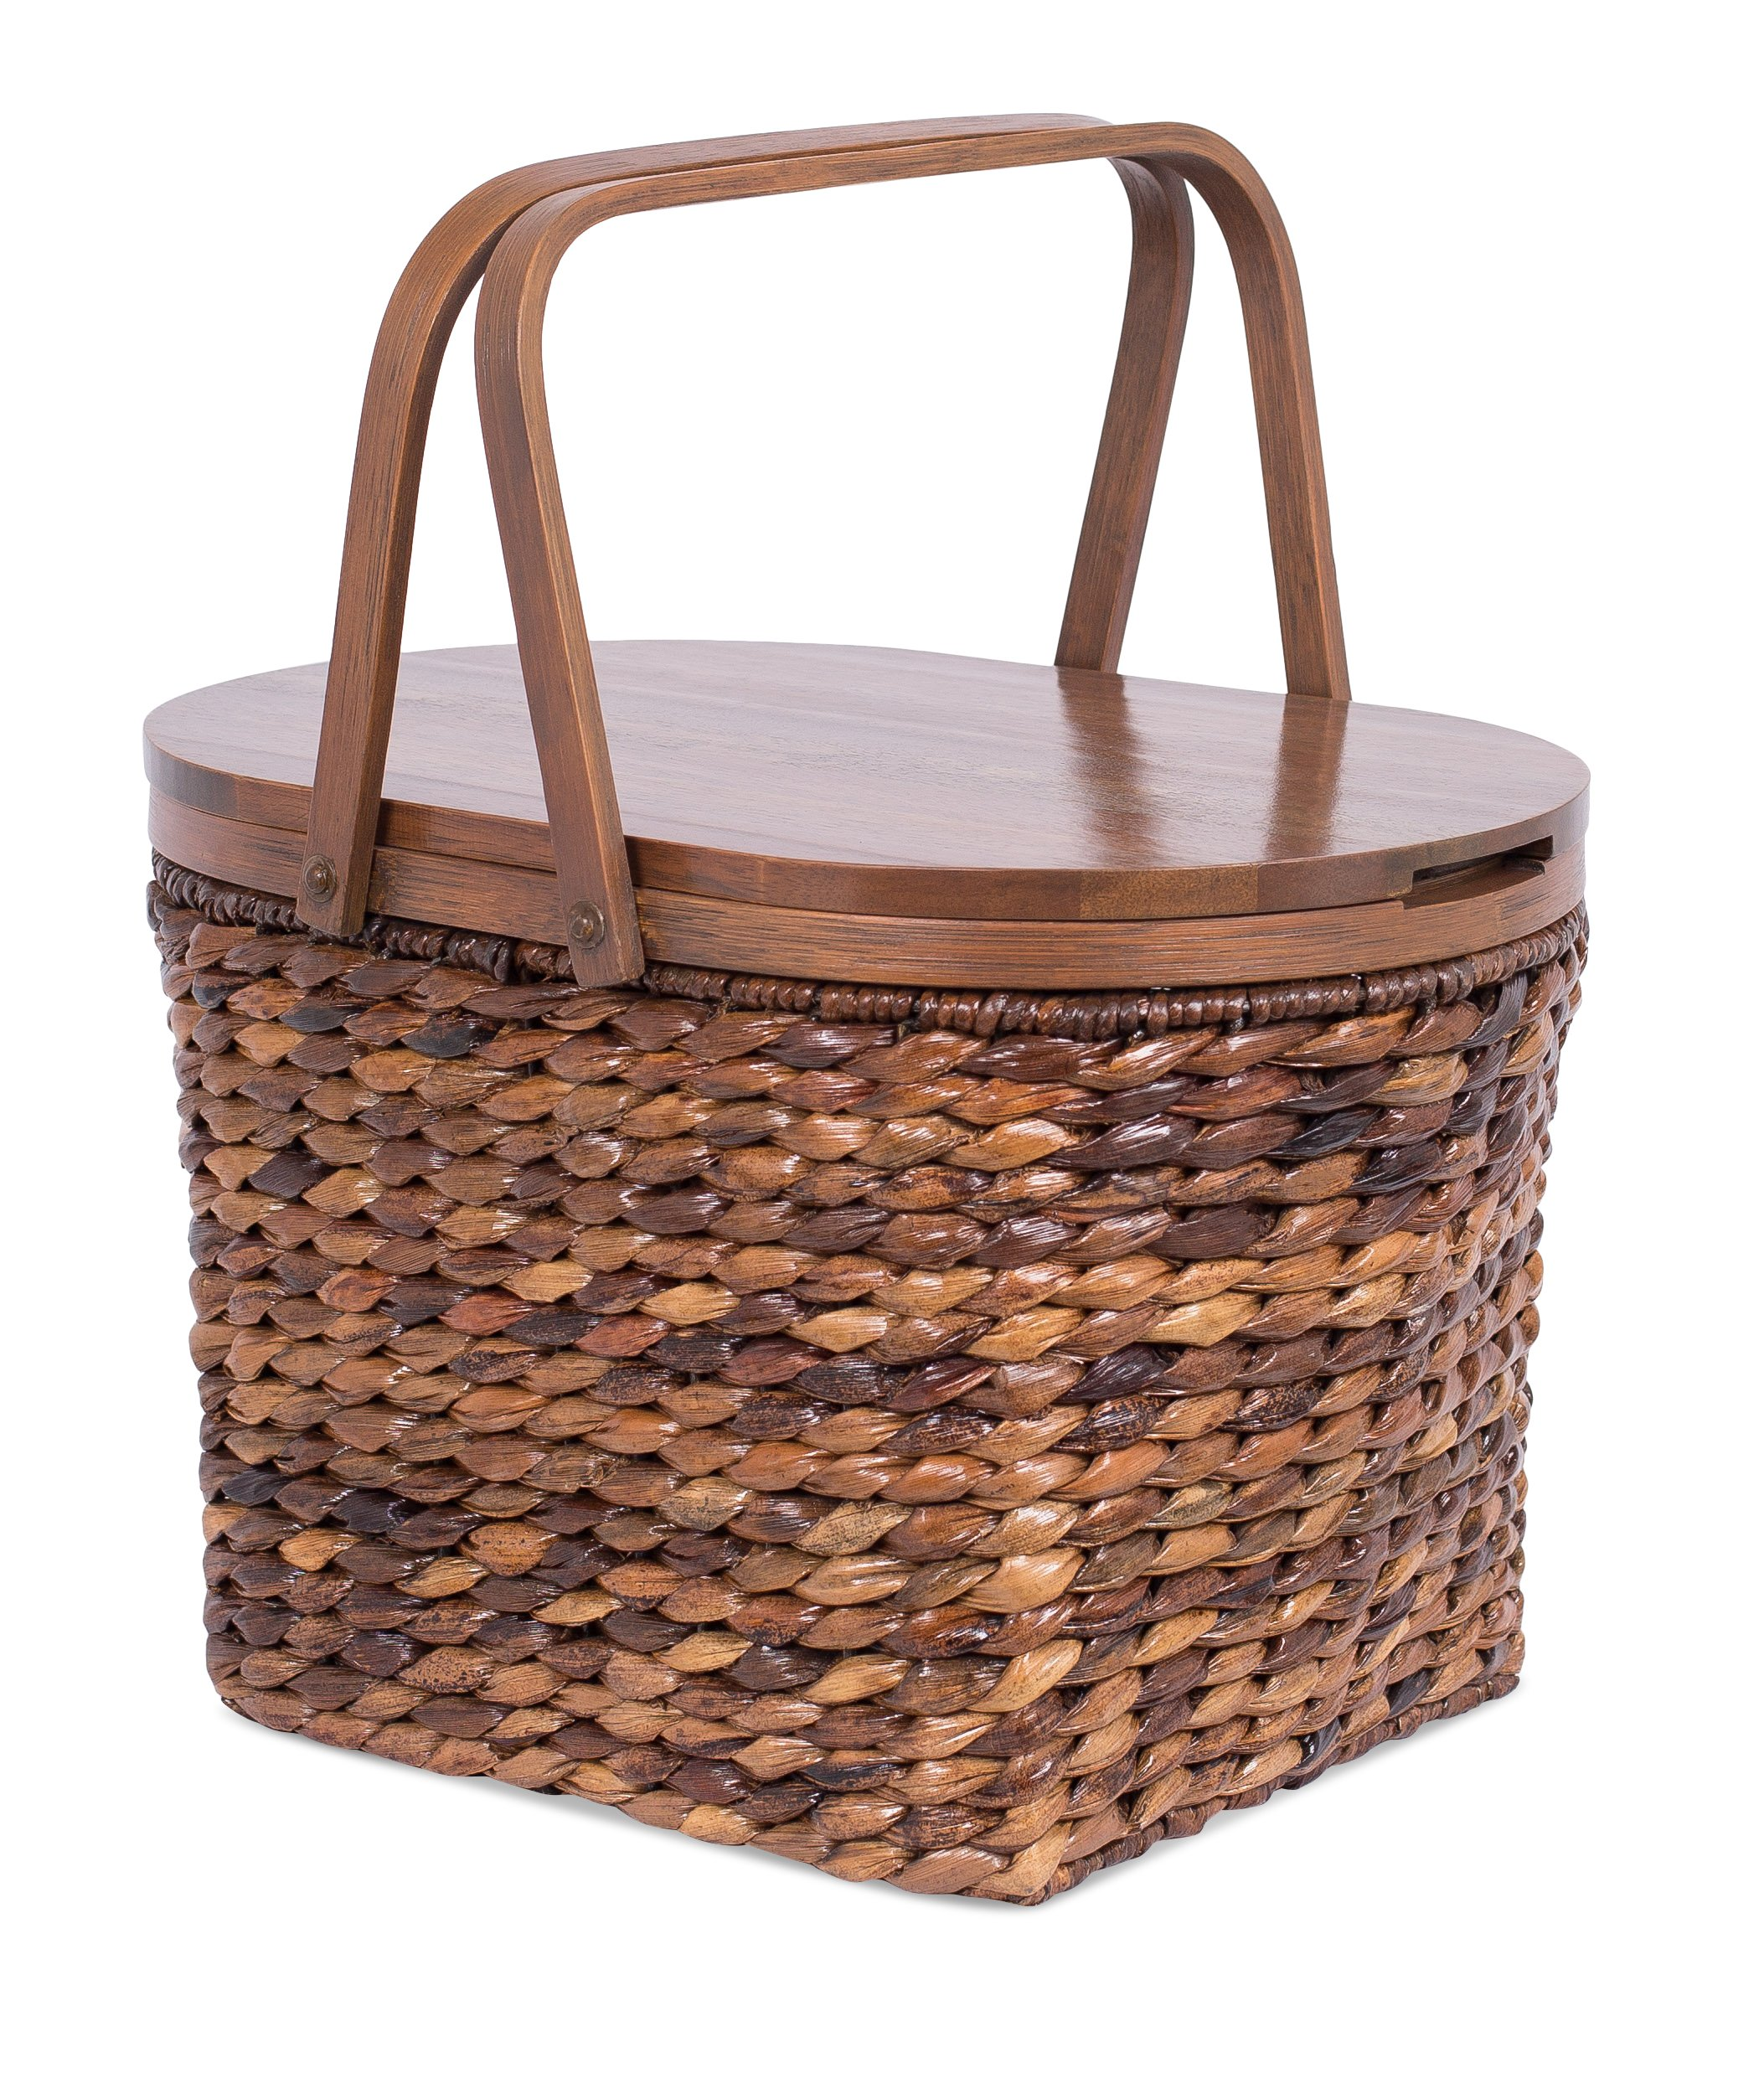 BIRDROCK HOME Seagrass and Abaca Picnic Basket with Wood Lid - Hand Woven - Espresso - Decorative Latch - Wooden Top - Home Décor - Folding Handles by BIRDROCK HOME